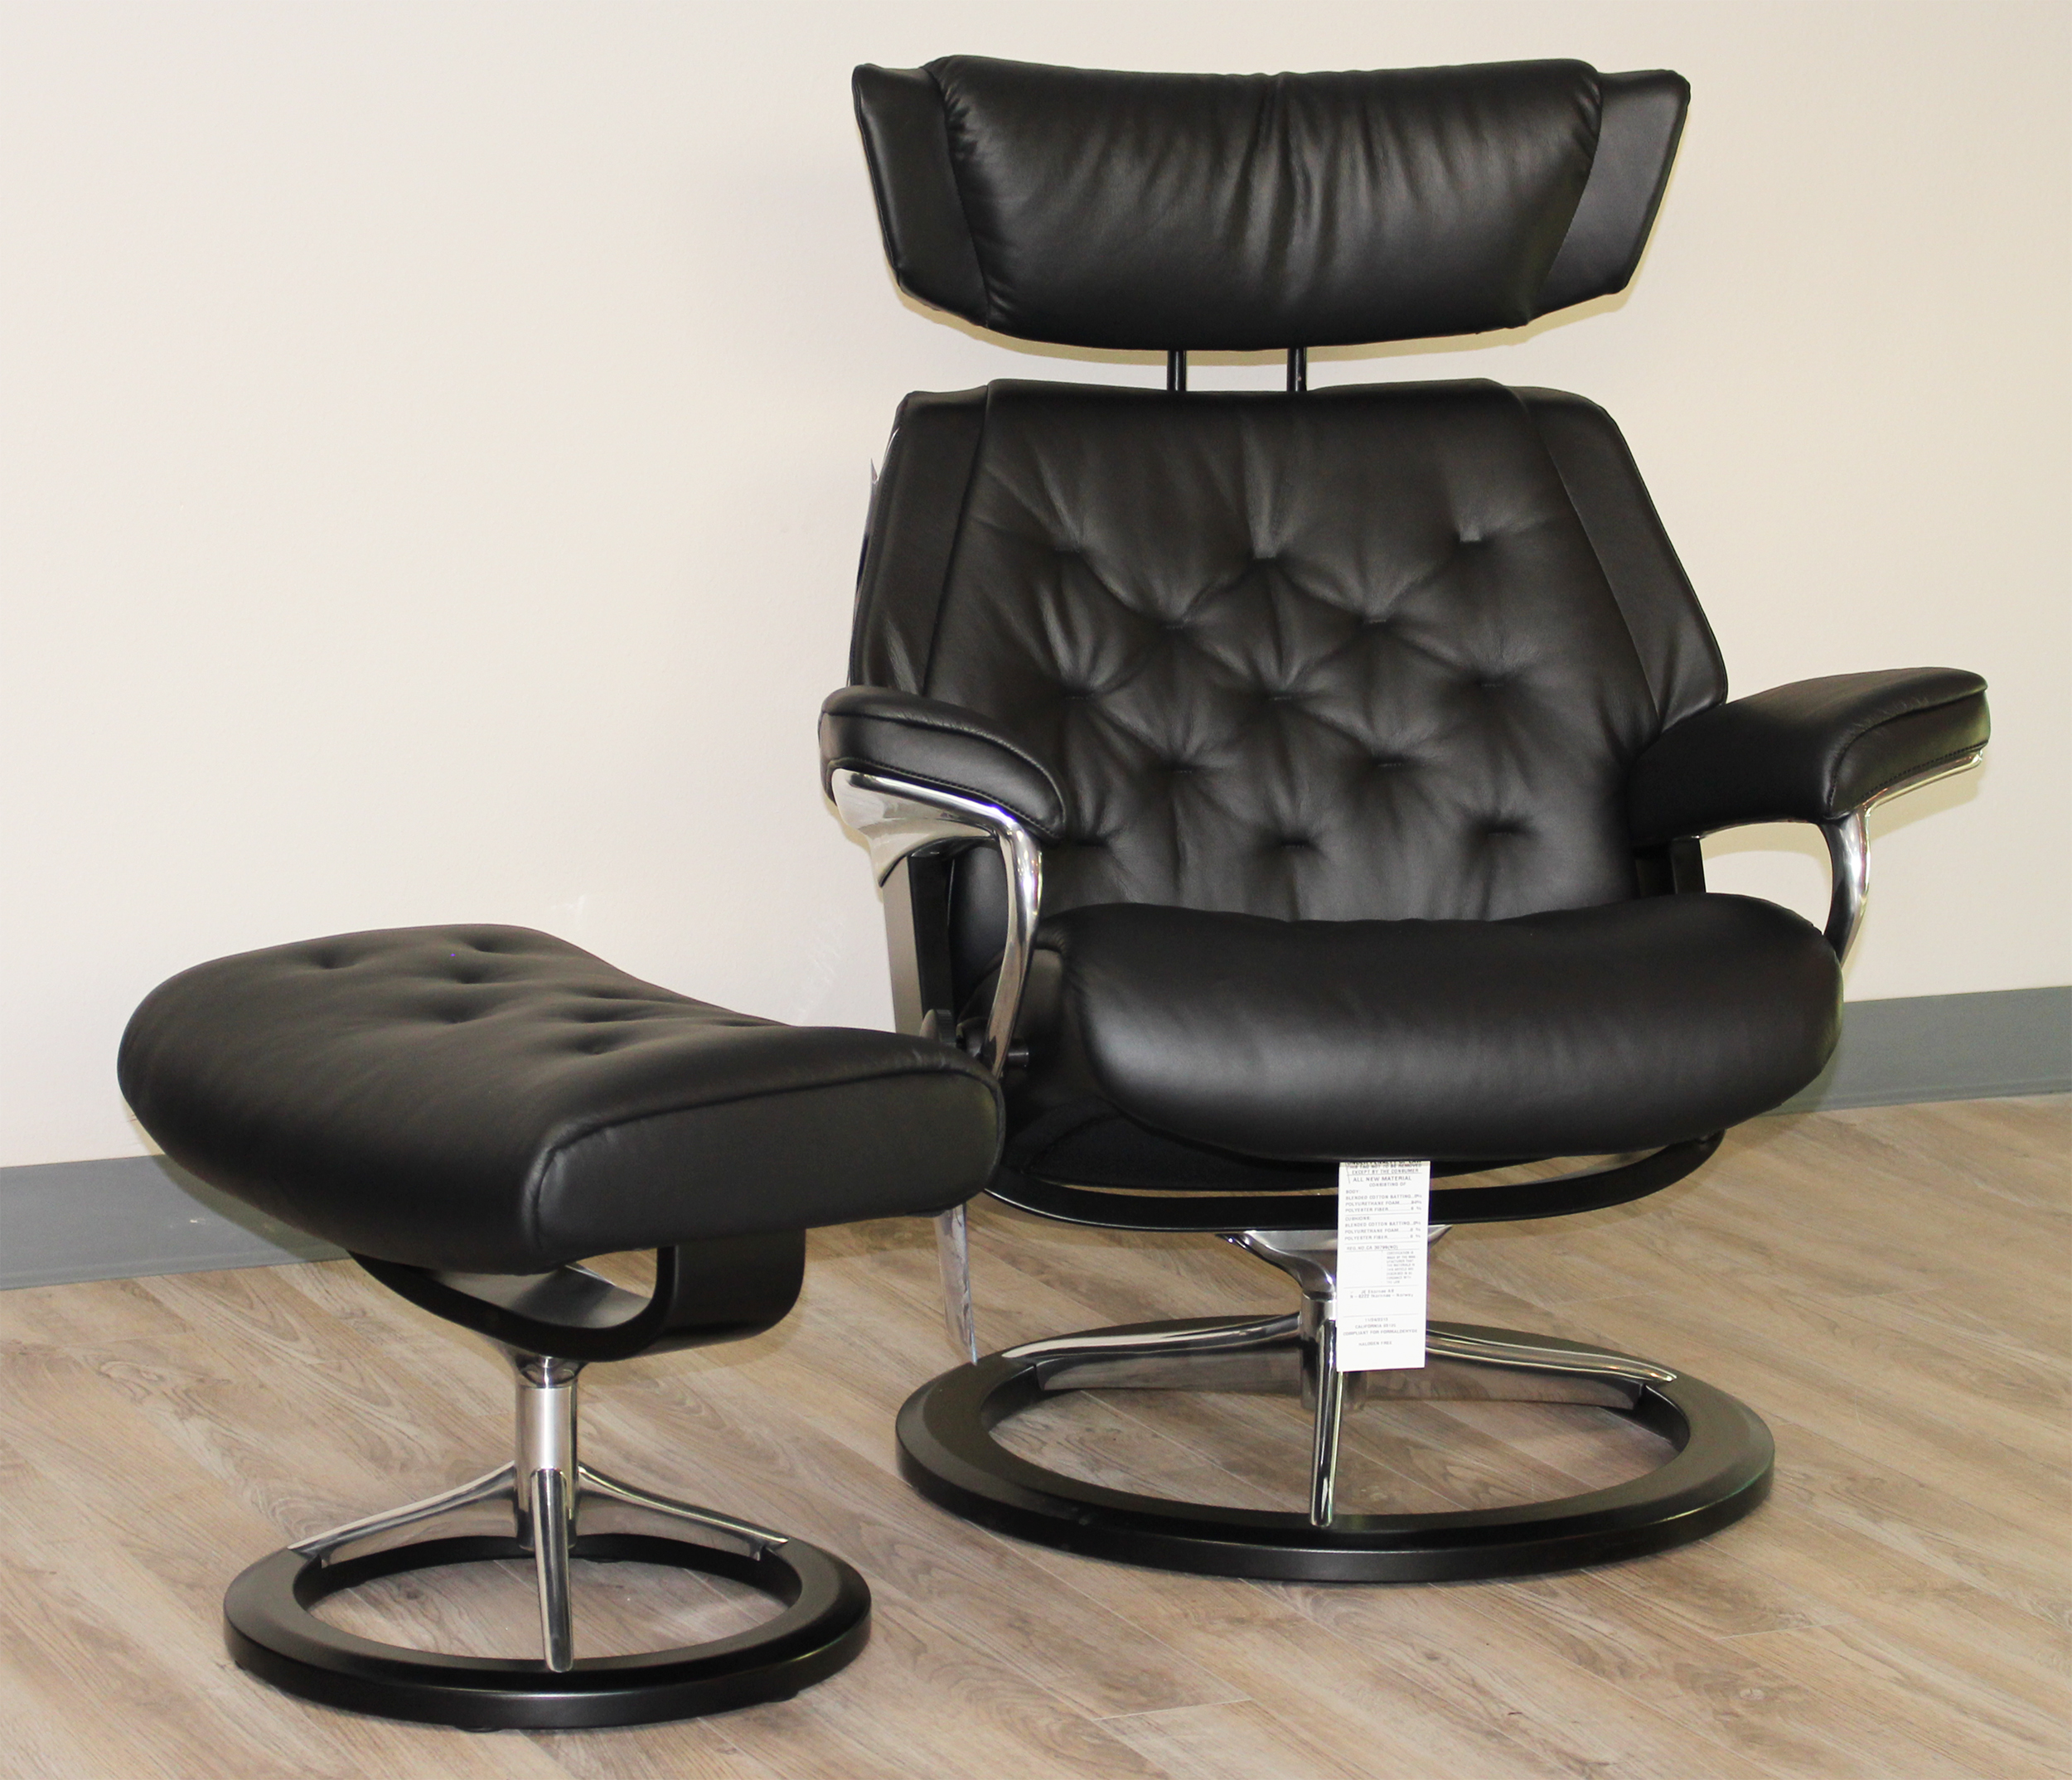 Strange Stressless Skyline Signature Base Medium Paloma Black Leather Recliner Chair And Ottoman By Ekornes Forskolin Free Trial Chair Design Images Forskolin Free Trialorg